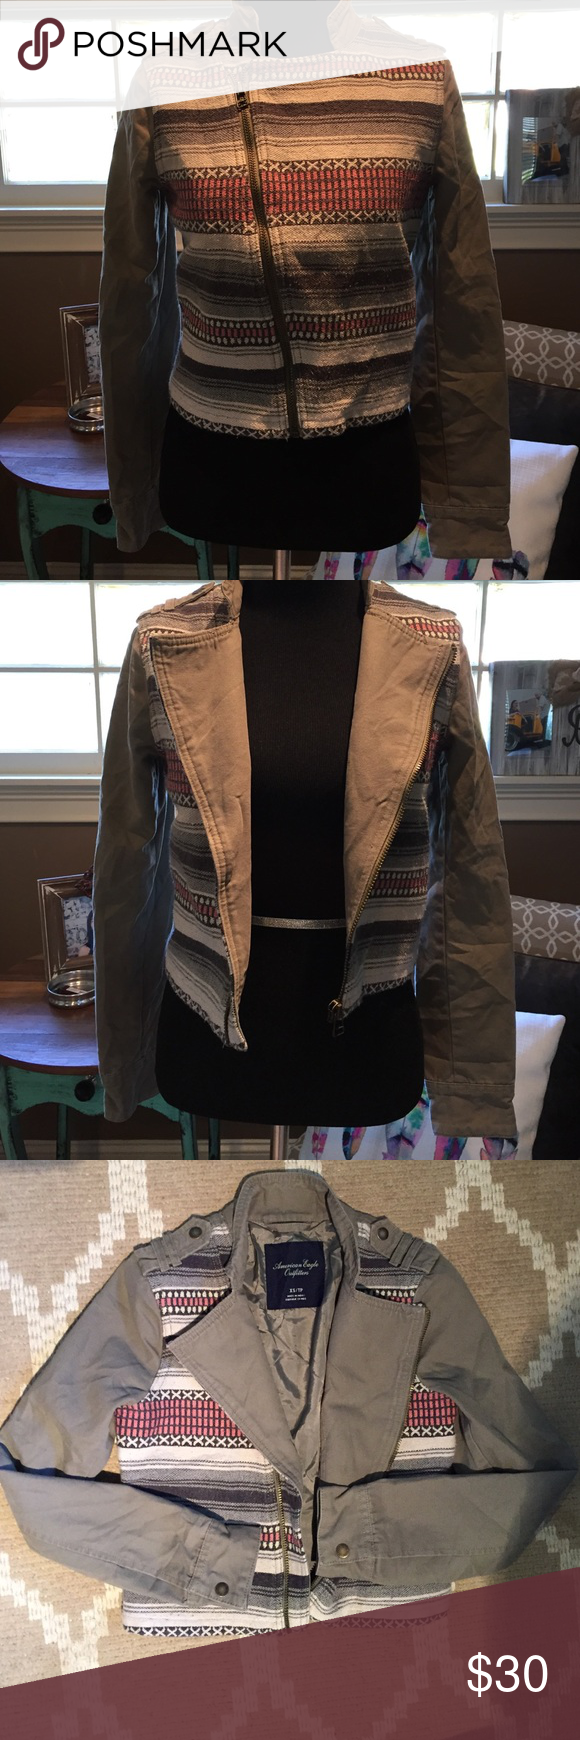 American Eagle Outfitters Olive green jacket with front tribal detail.  Super cute with jeans or black pants!  Great staple piece for fall! American Eagle Outfitters Jackets & Coats